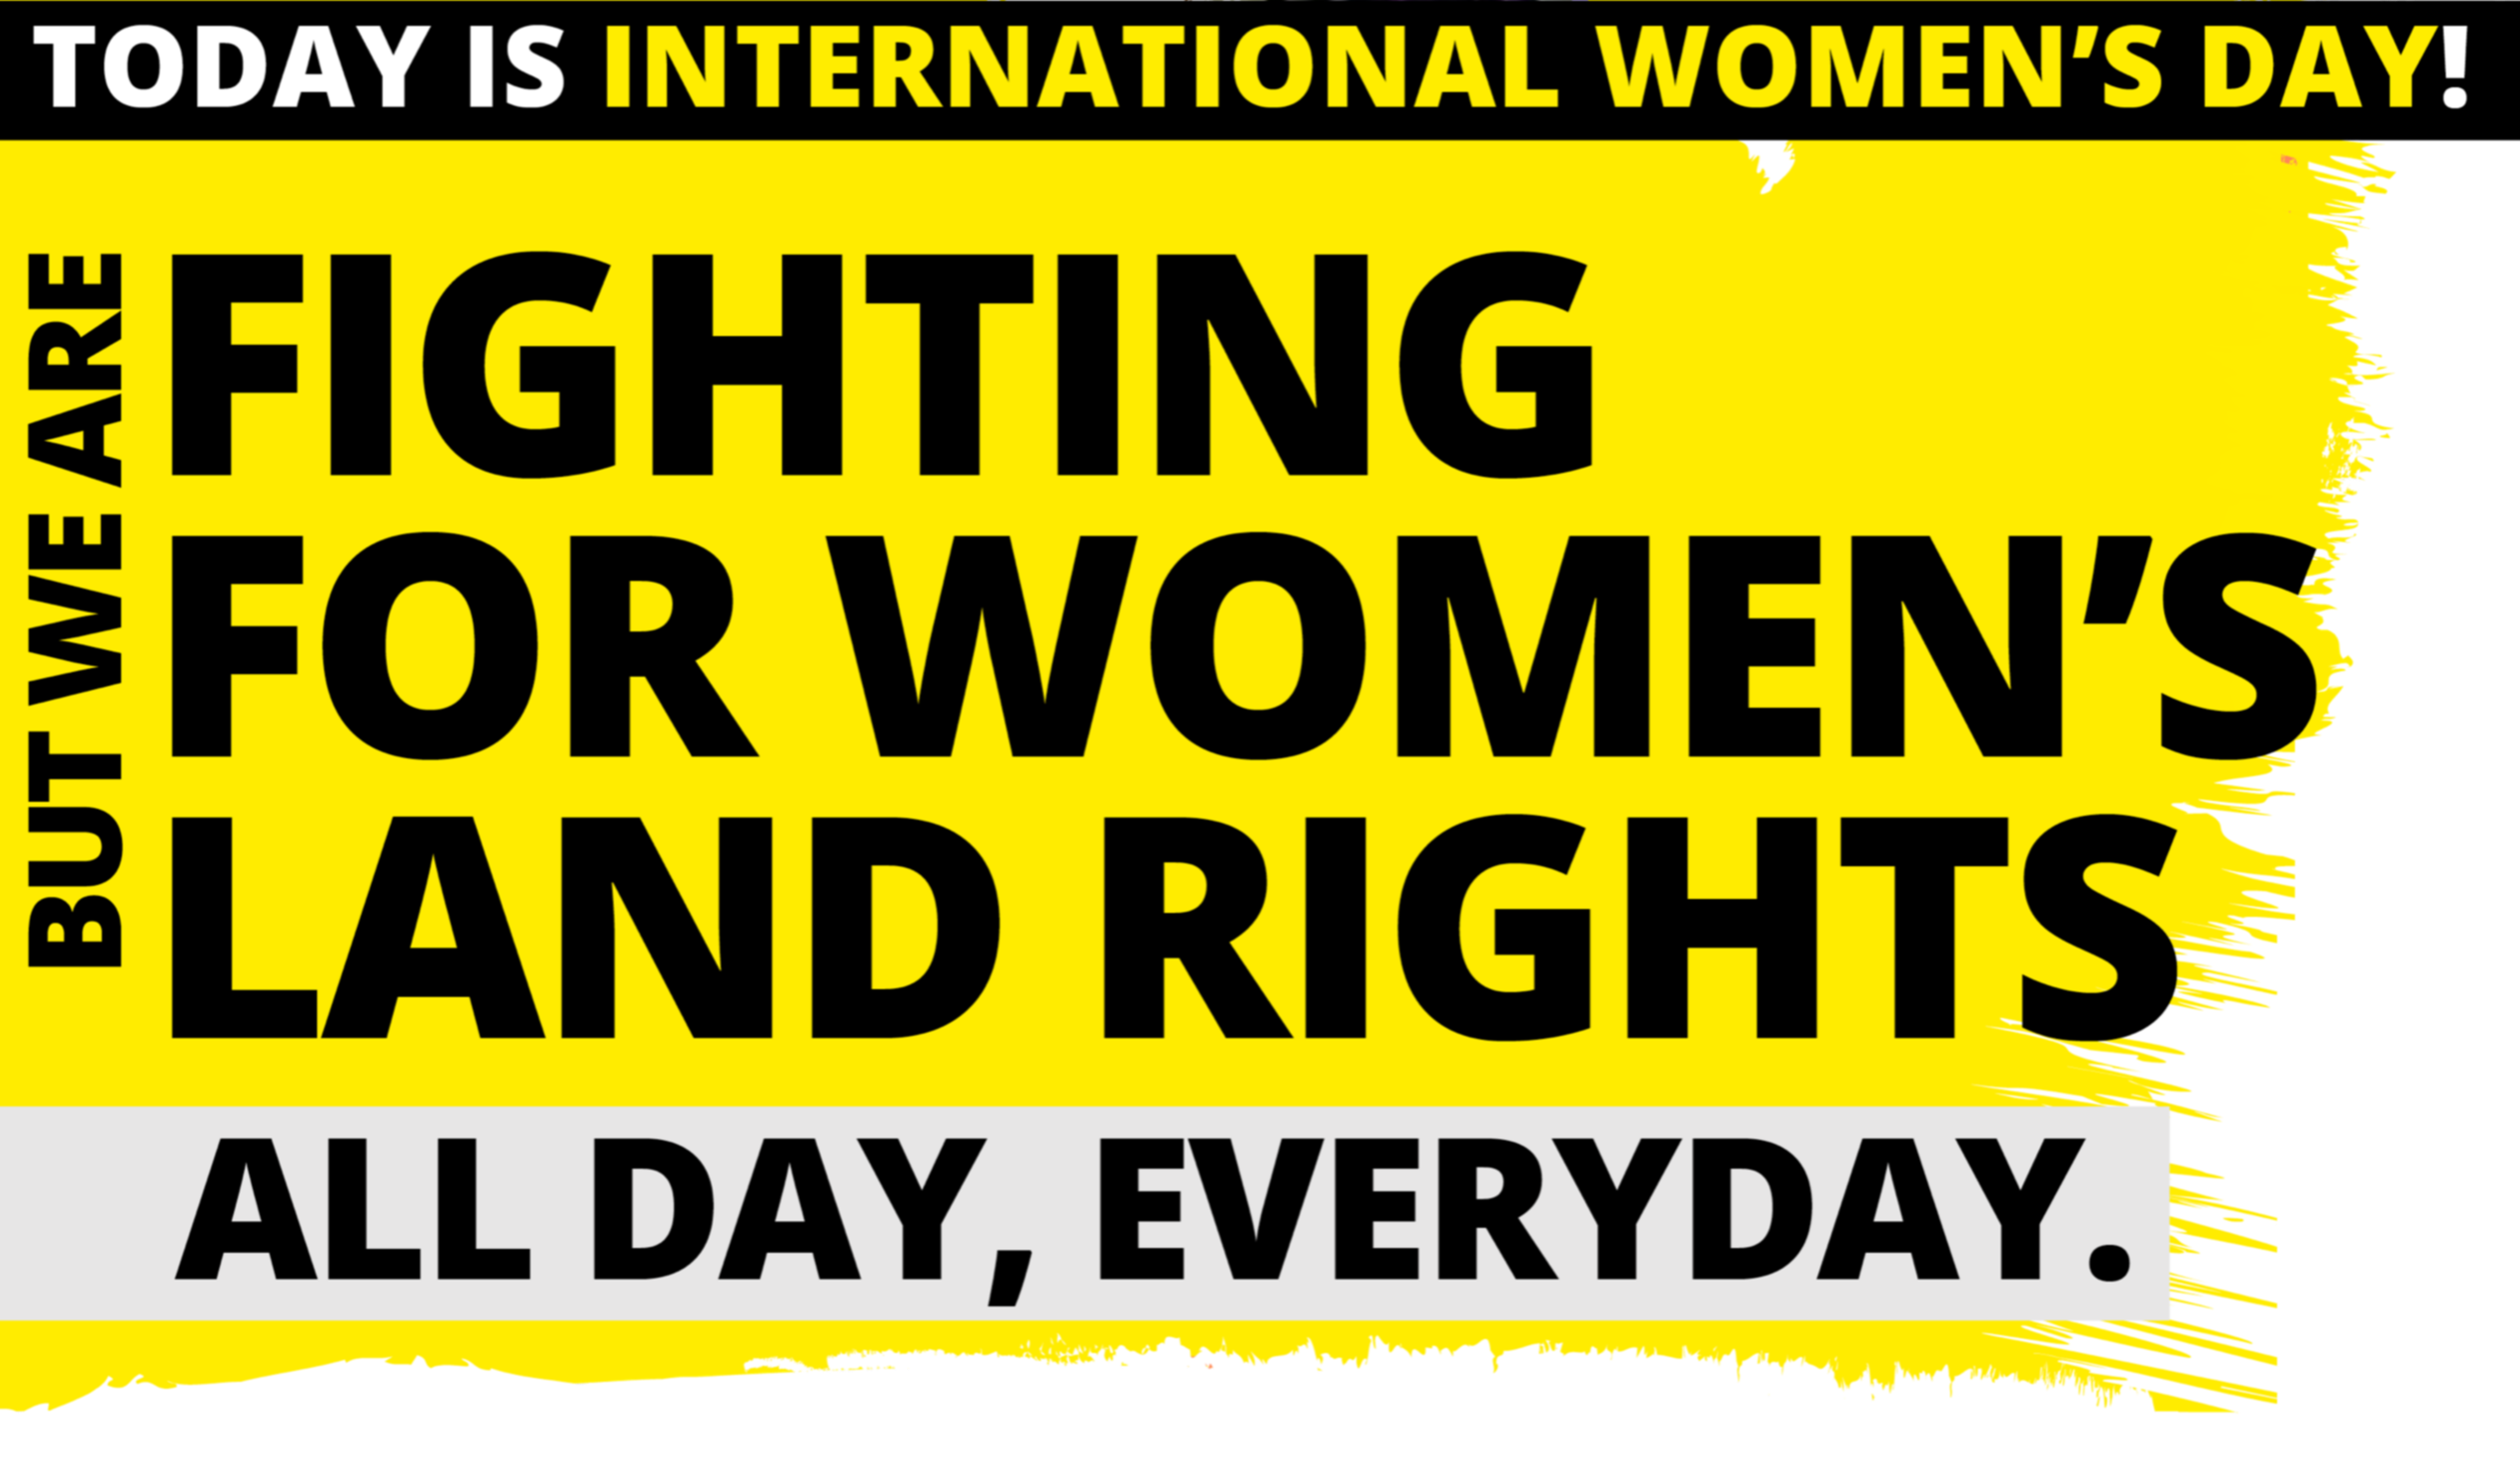 Fighting for women's land rights